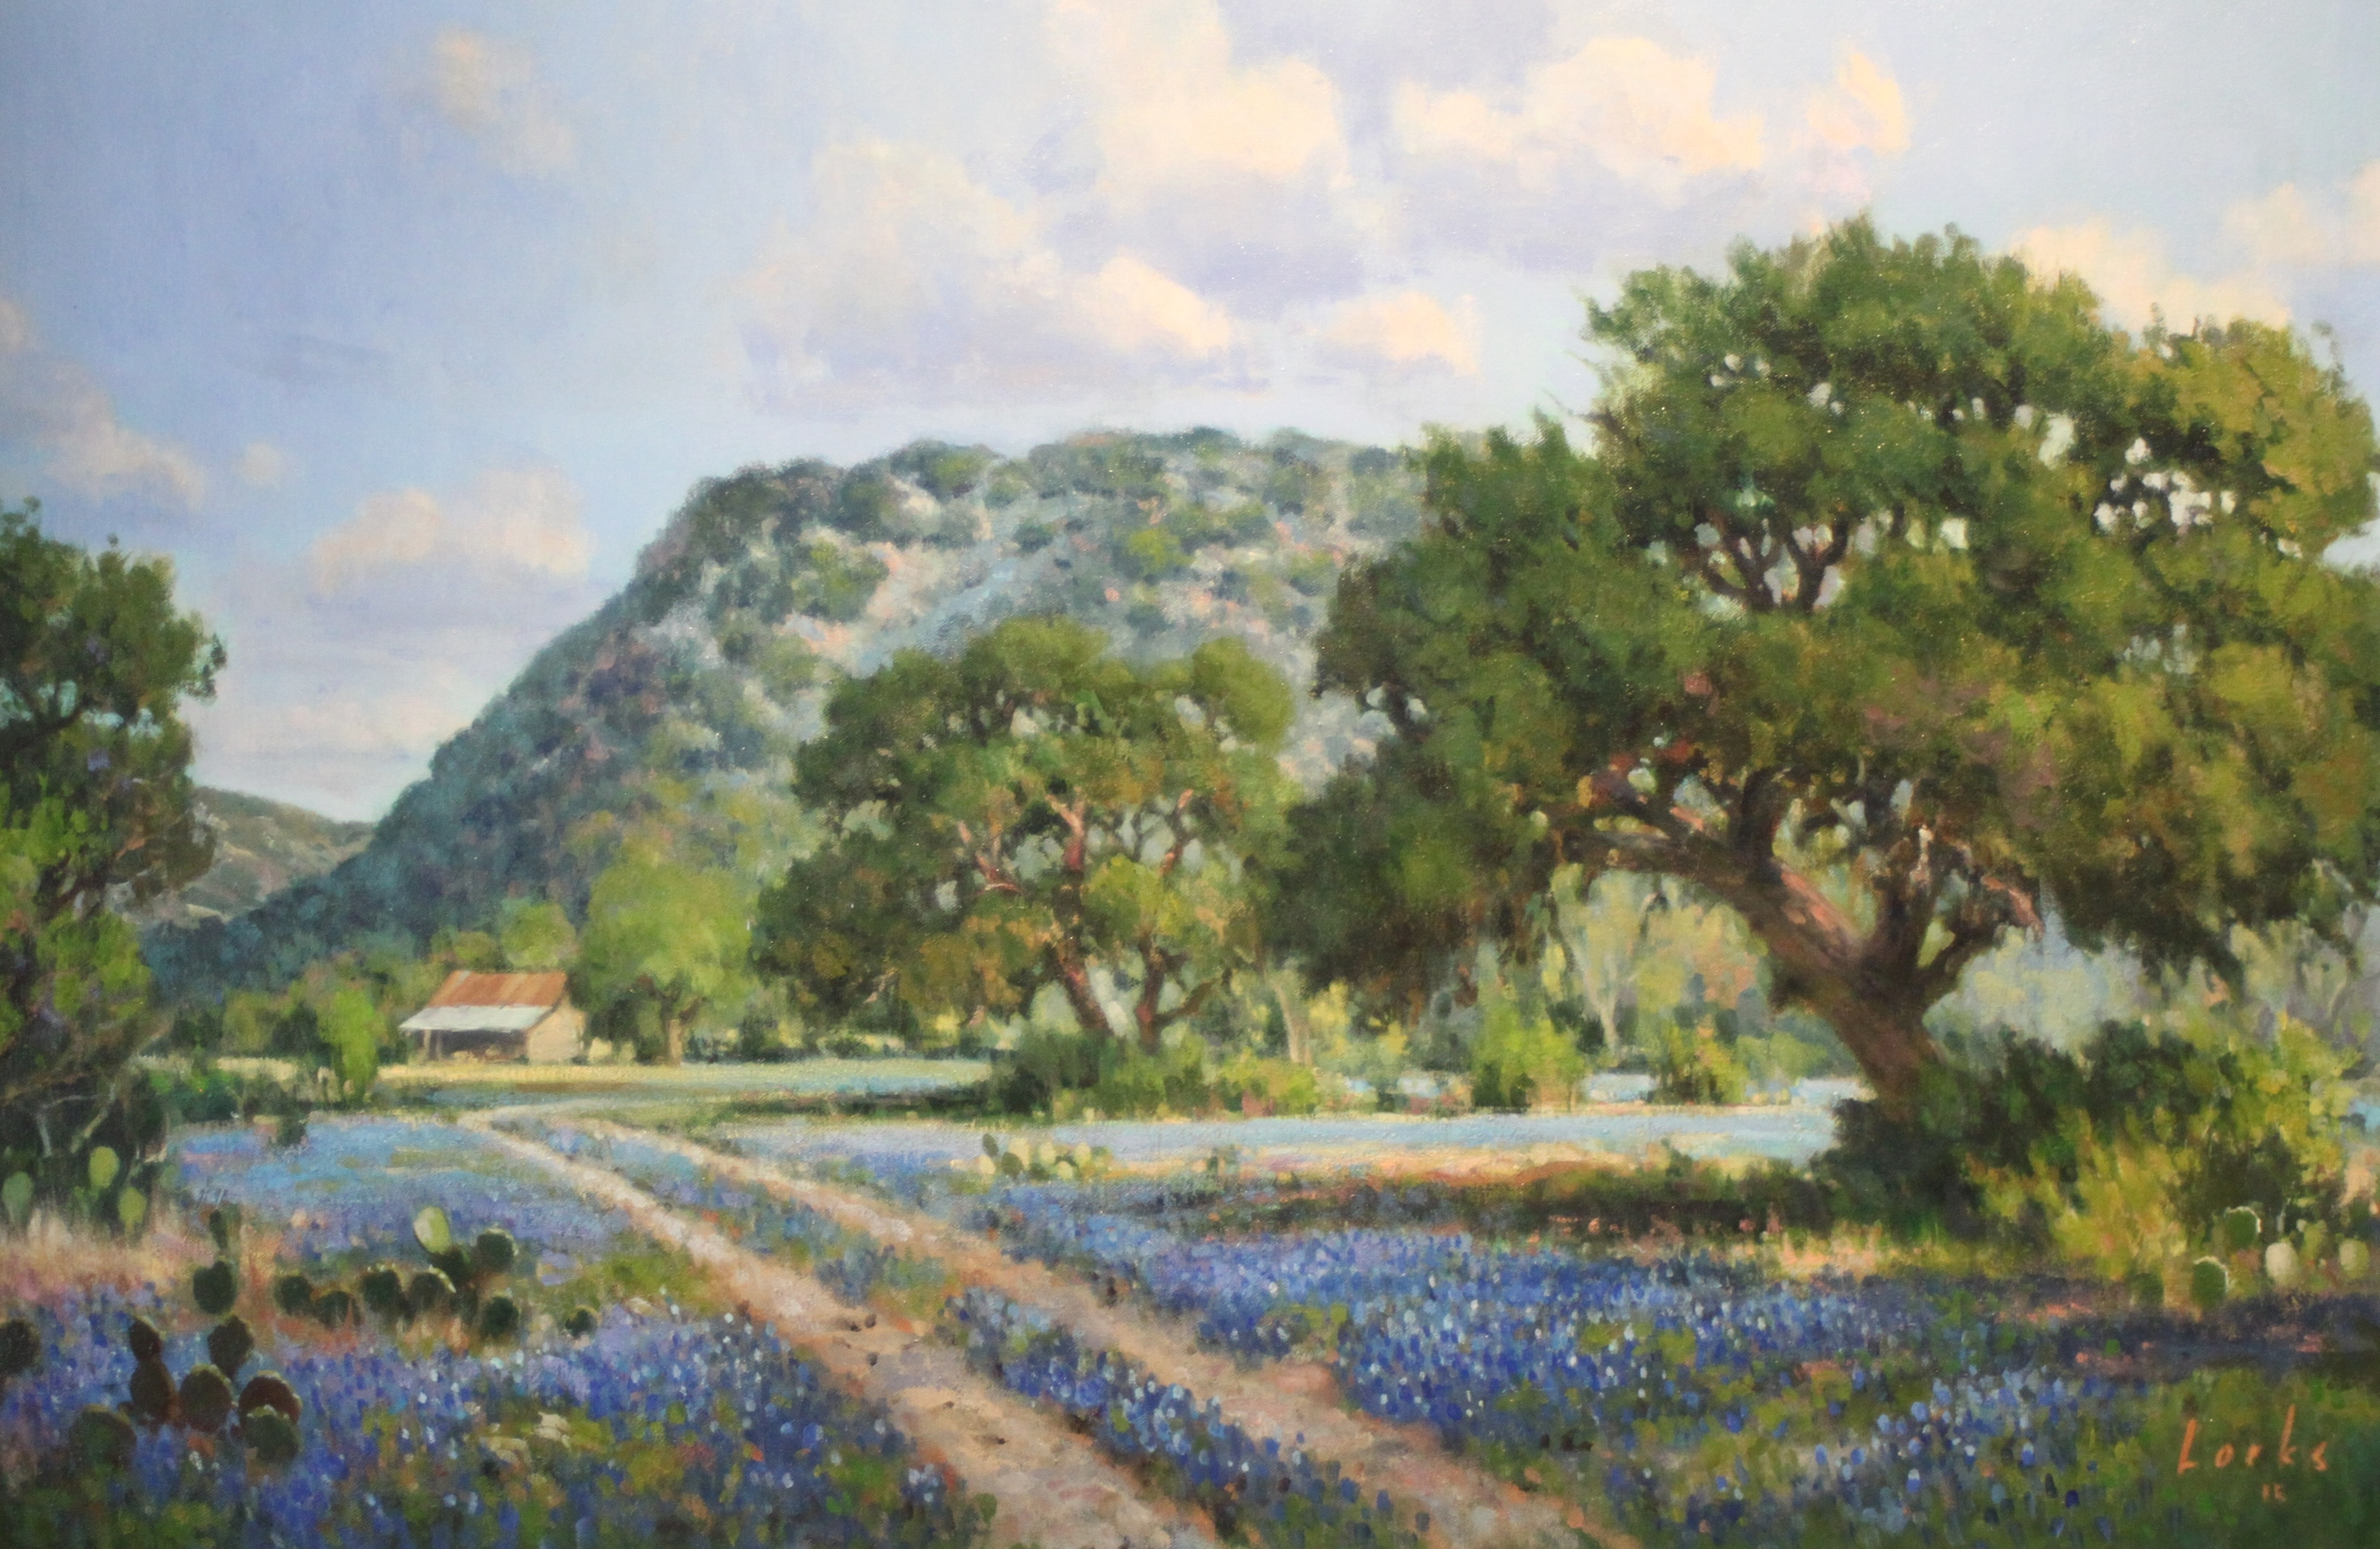 David Forks A Road to the Barn 24X36 Oil on Canvas $2,592.jpg